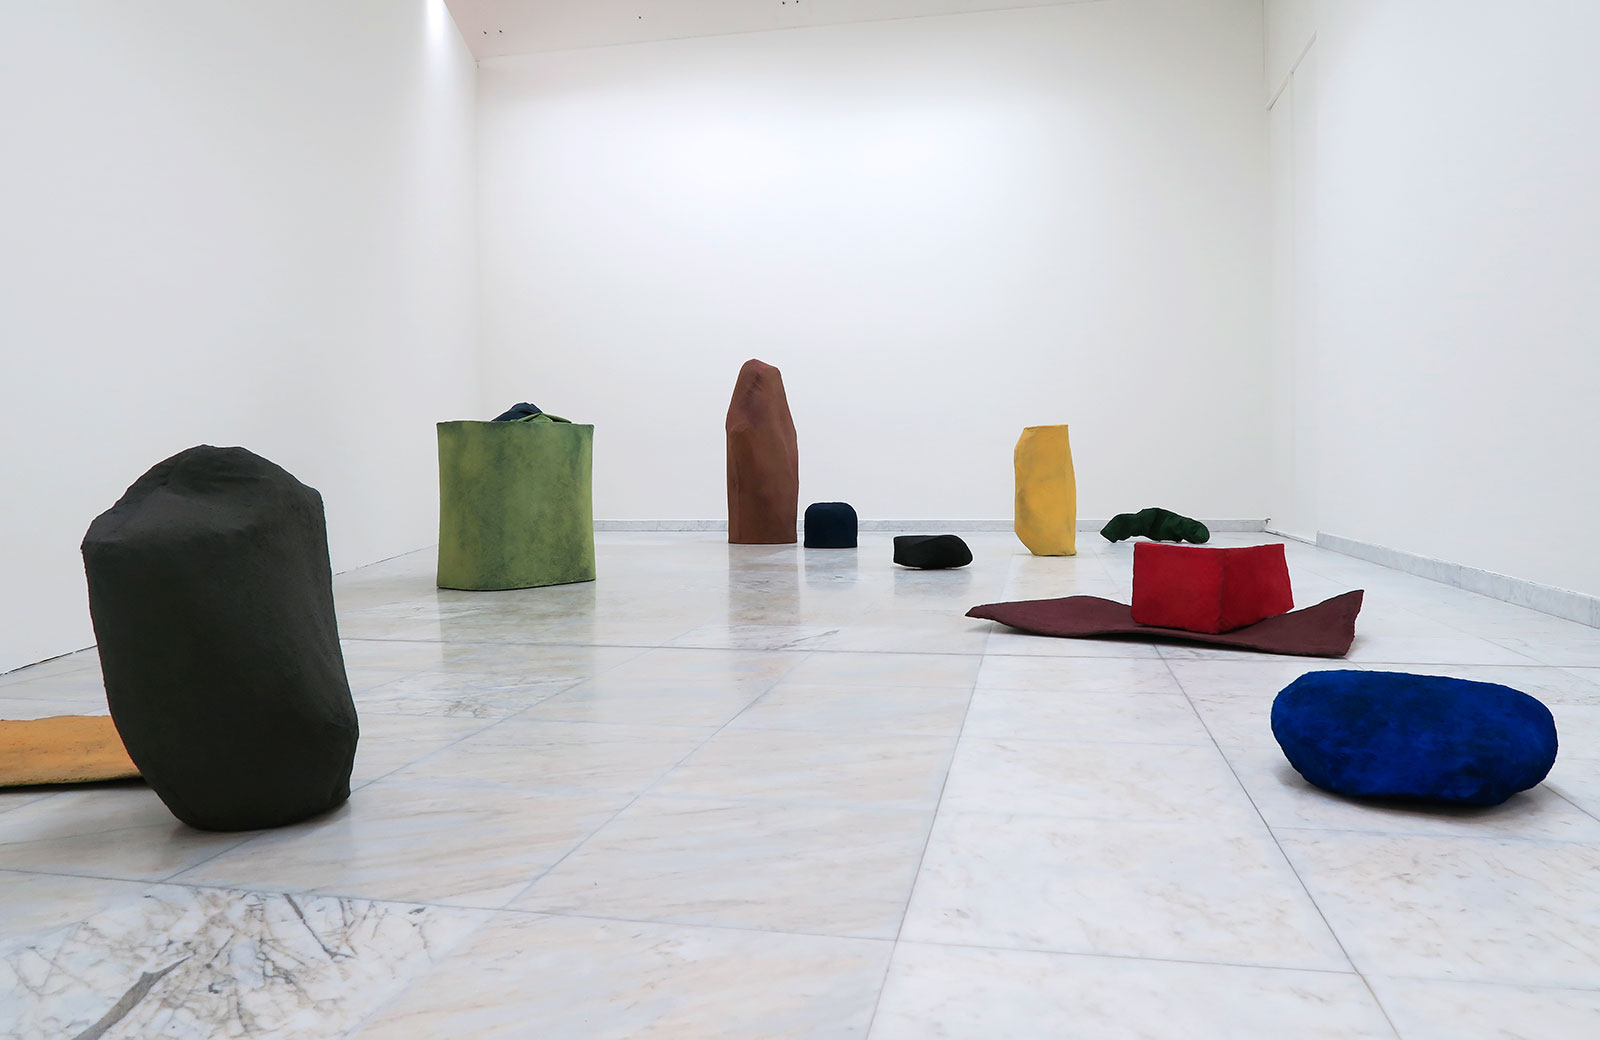 The Paris Abstractions, 2015. Installation consisting of 14 pigment sculptures, dimension variable and 4 watercolours, each 28 x 32 cm. Installation view NN-A NN-A NN-A: New Norwegian Abstraction, Stavanger Art Museum, 2016